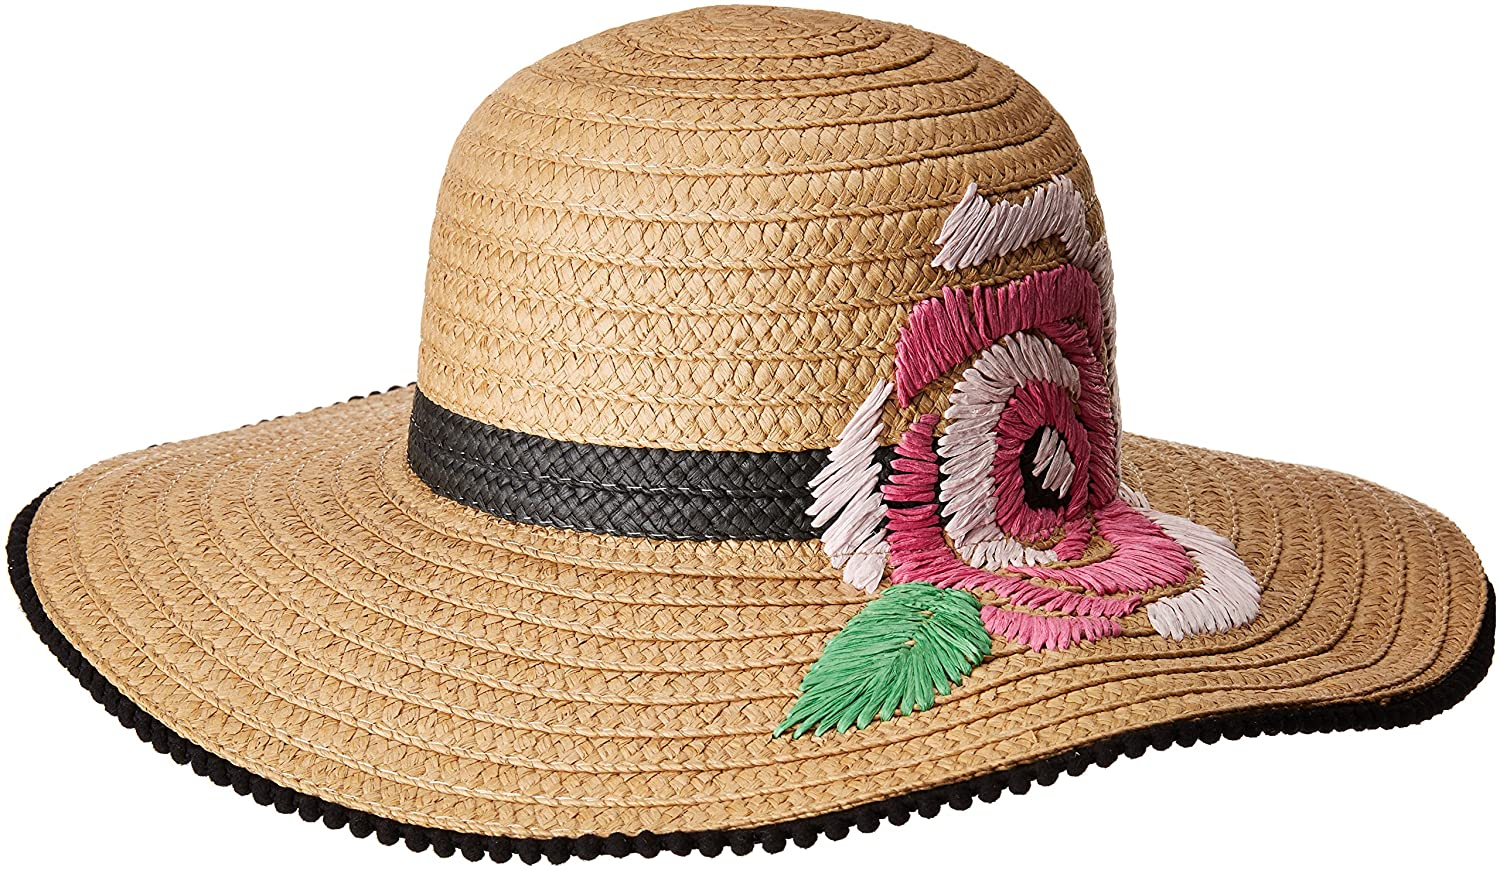 9848beb7a Betsey Johnson Women's Flowerista Floppy Hat, Tan, One Size at ...